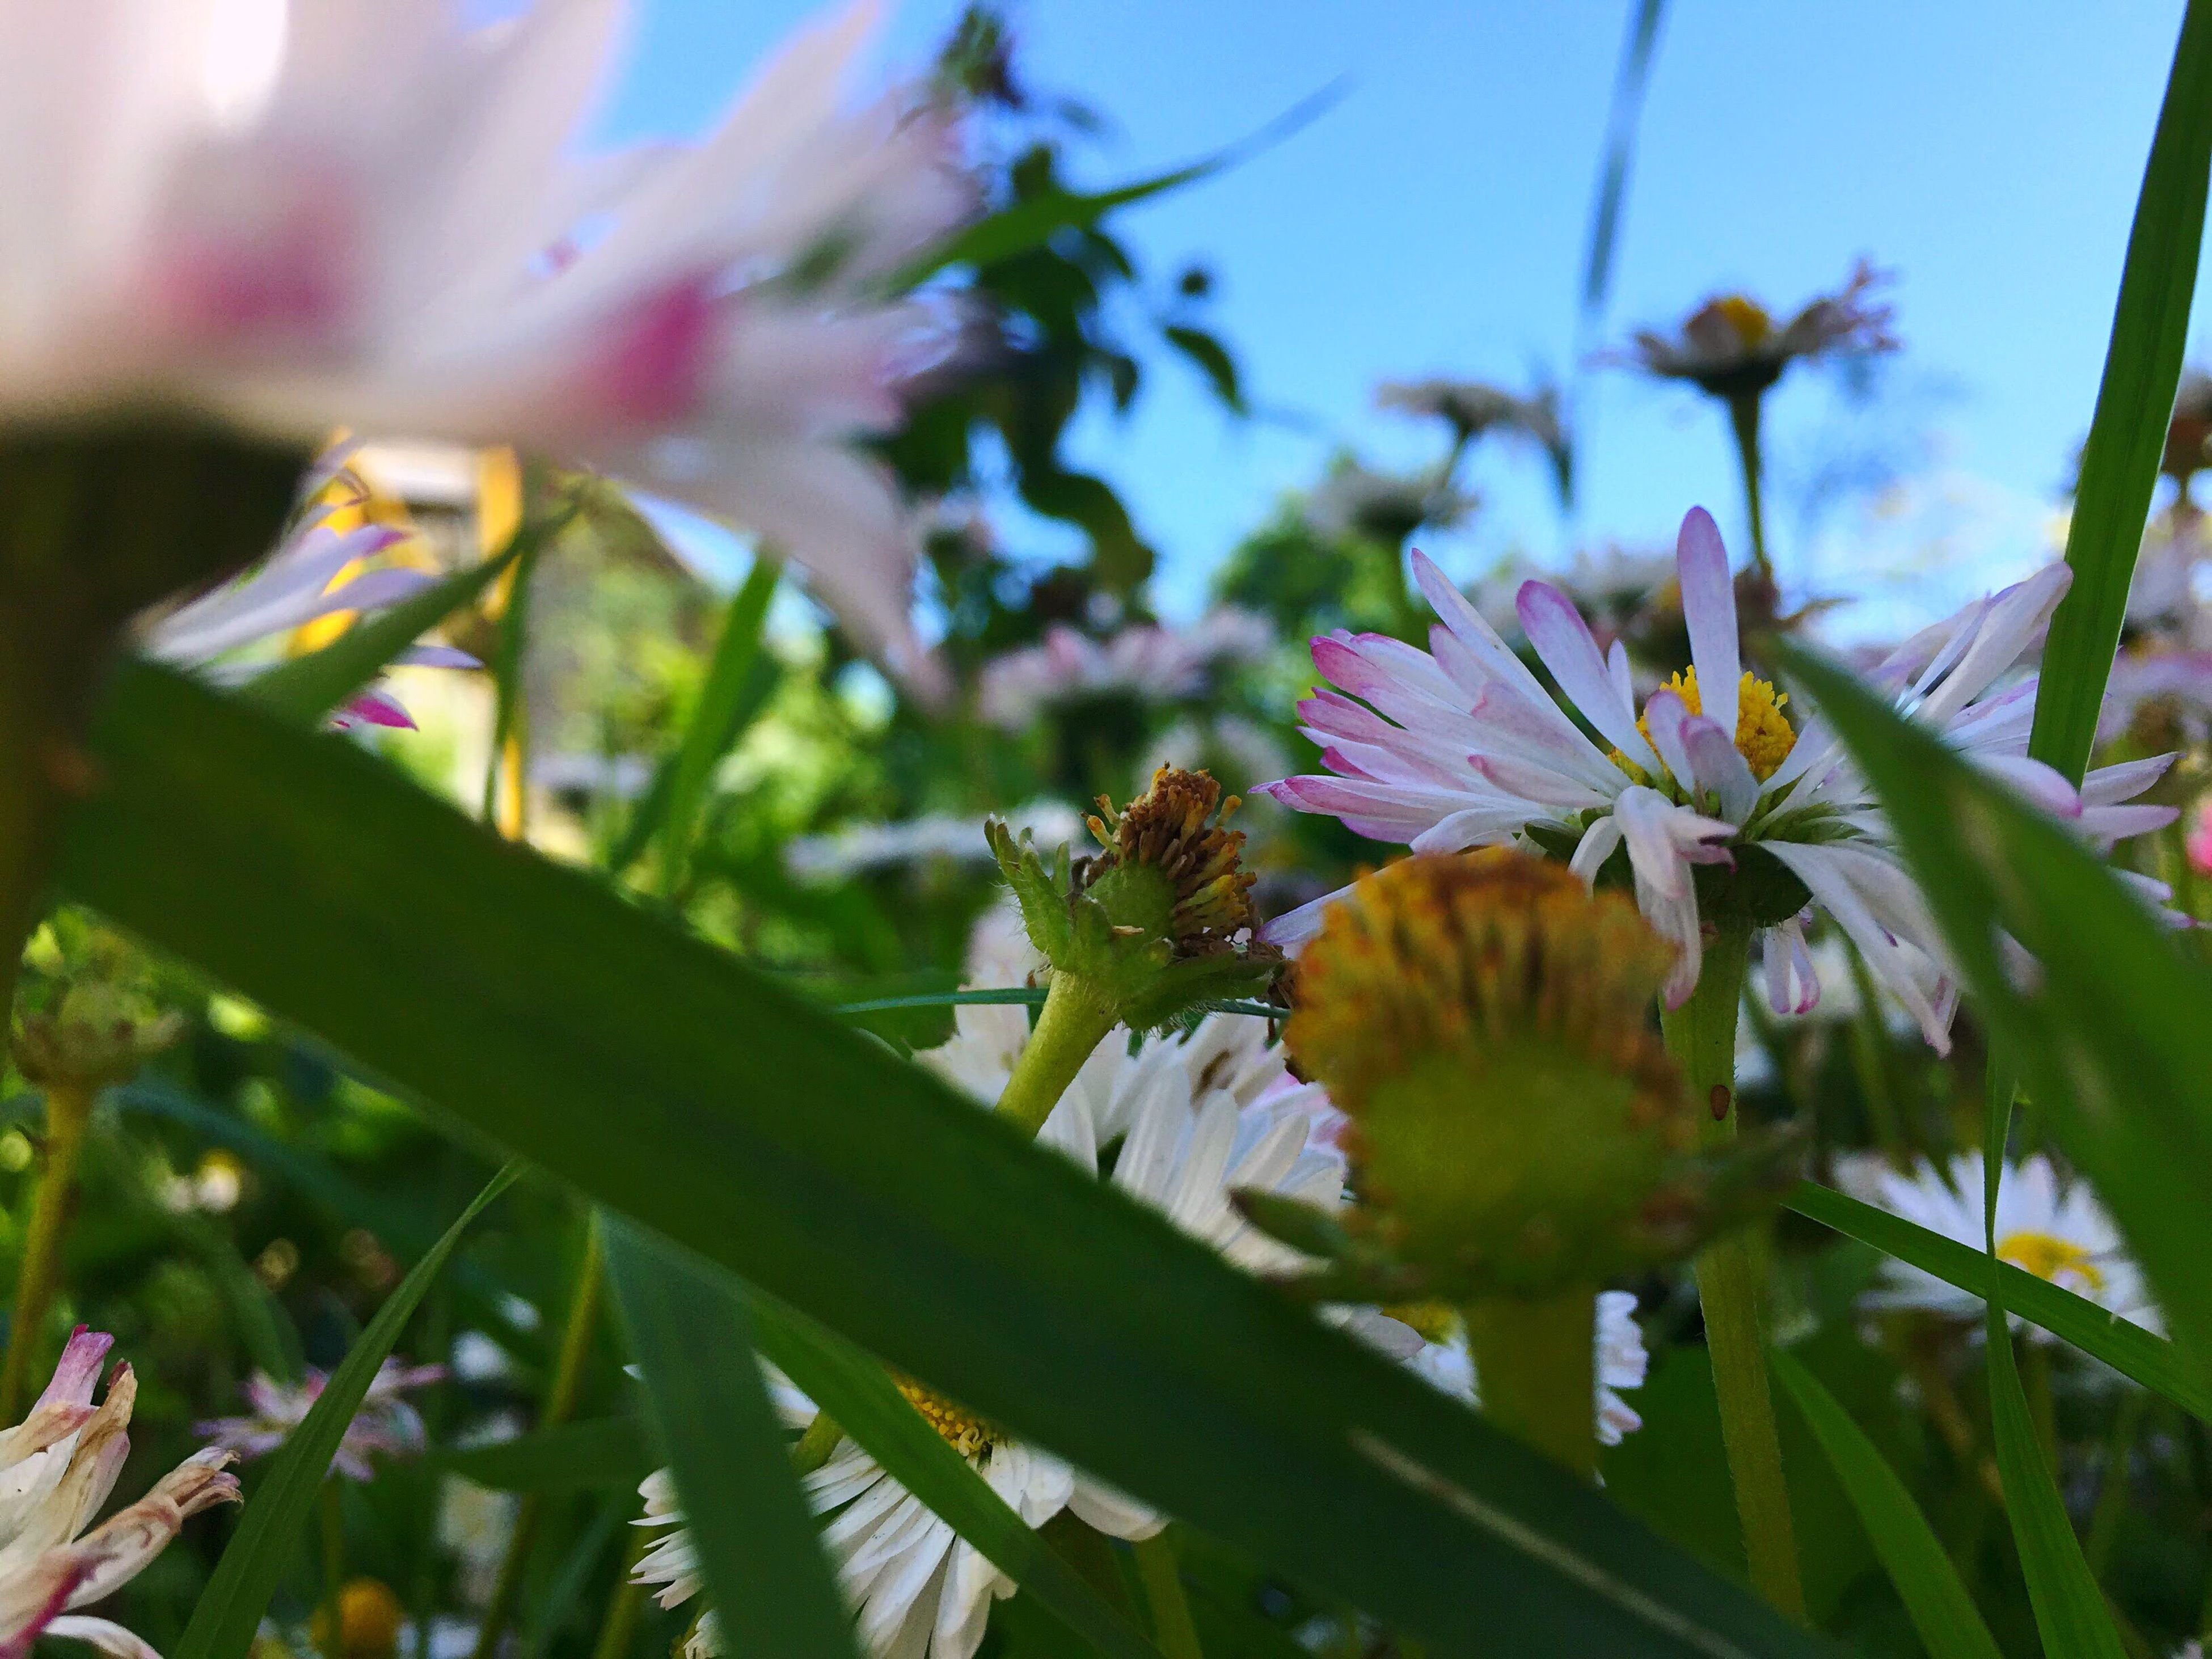 flower, growth, freshness, fragility, one animal, focus on foreground, plant, petal, beauty in nature, close-up, insect, nature, flower head, animal themes, animals in the wild, leaf, wildlife, blooming, low angle view, day